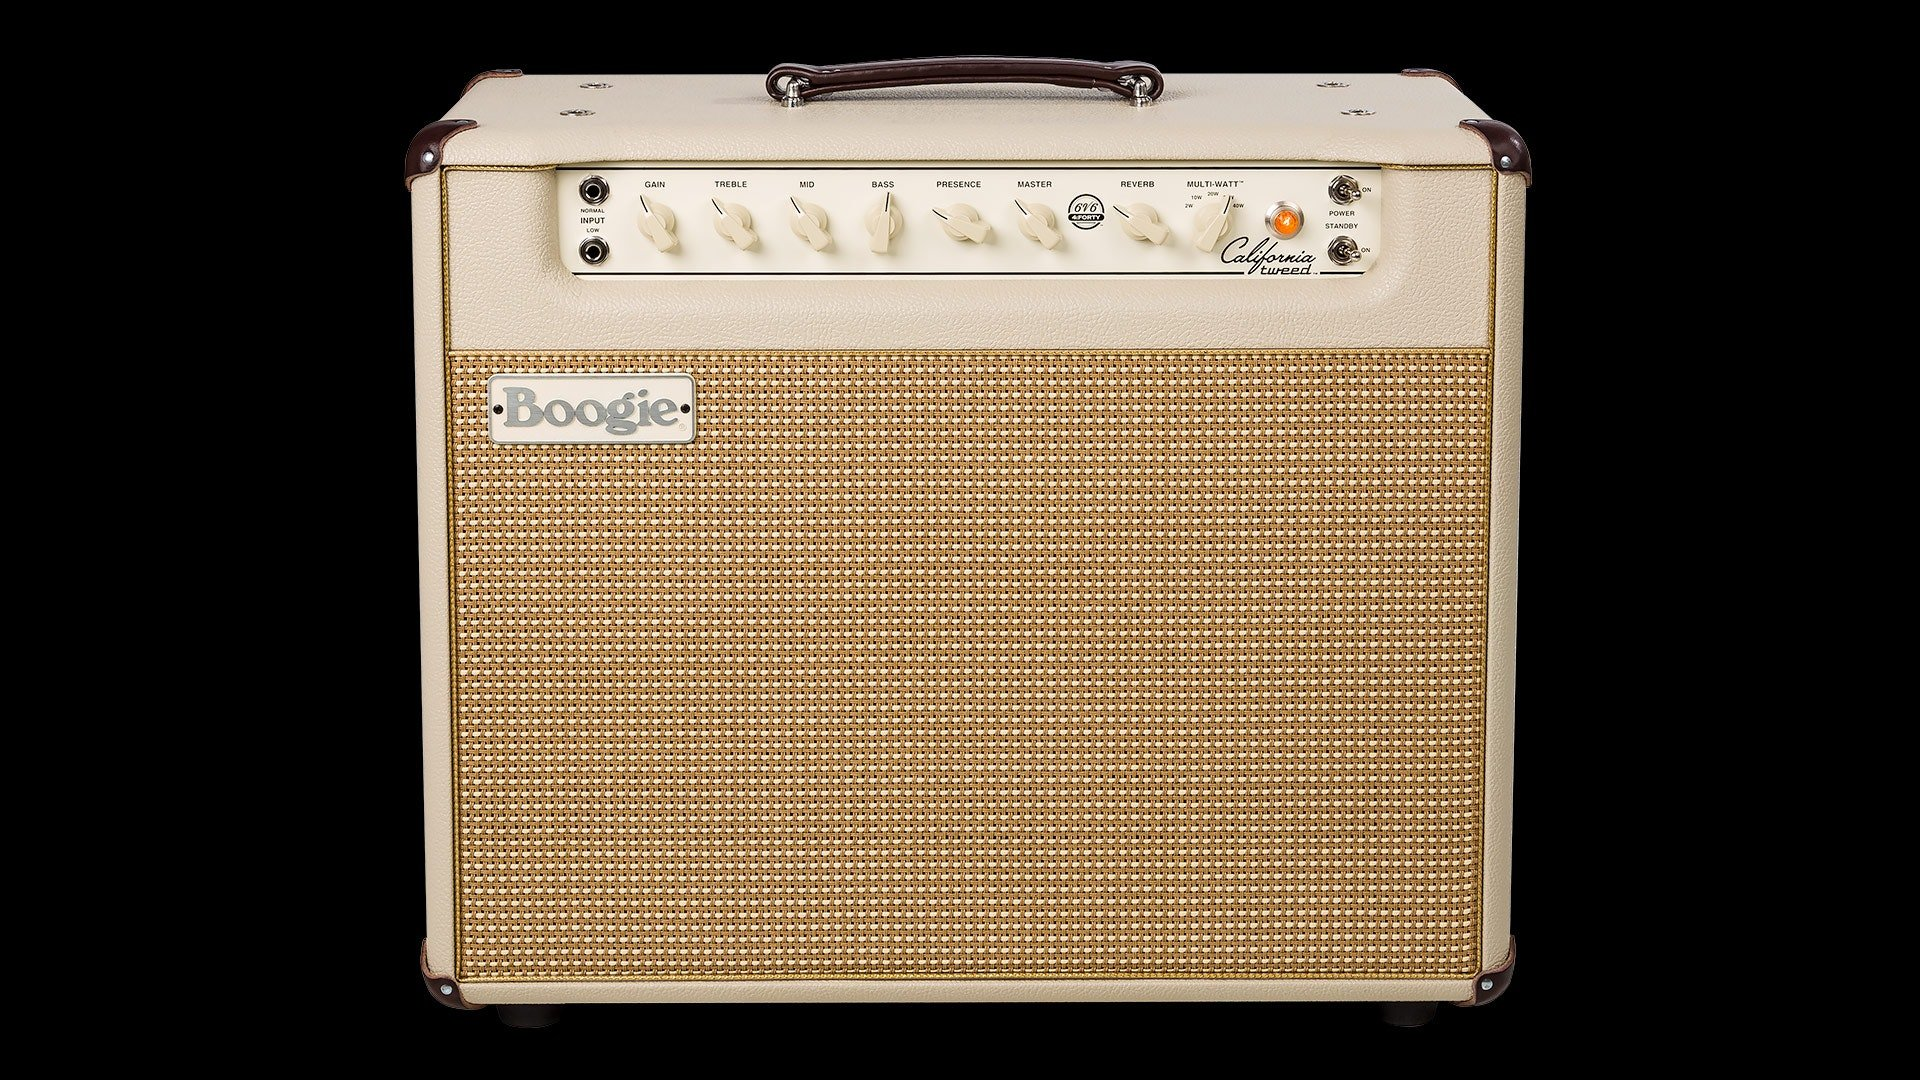 Mesa Boogie California Tweed 1x12 6V6 Tube Amplifier Cream Bronco/Cream Tan